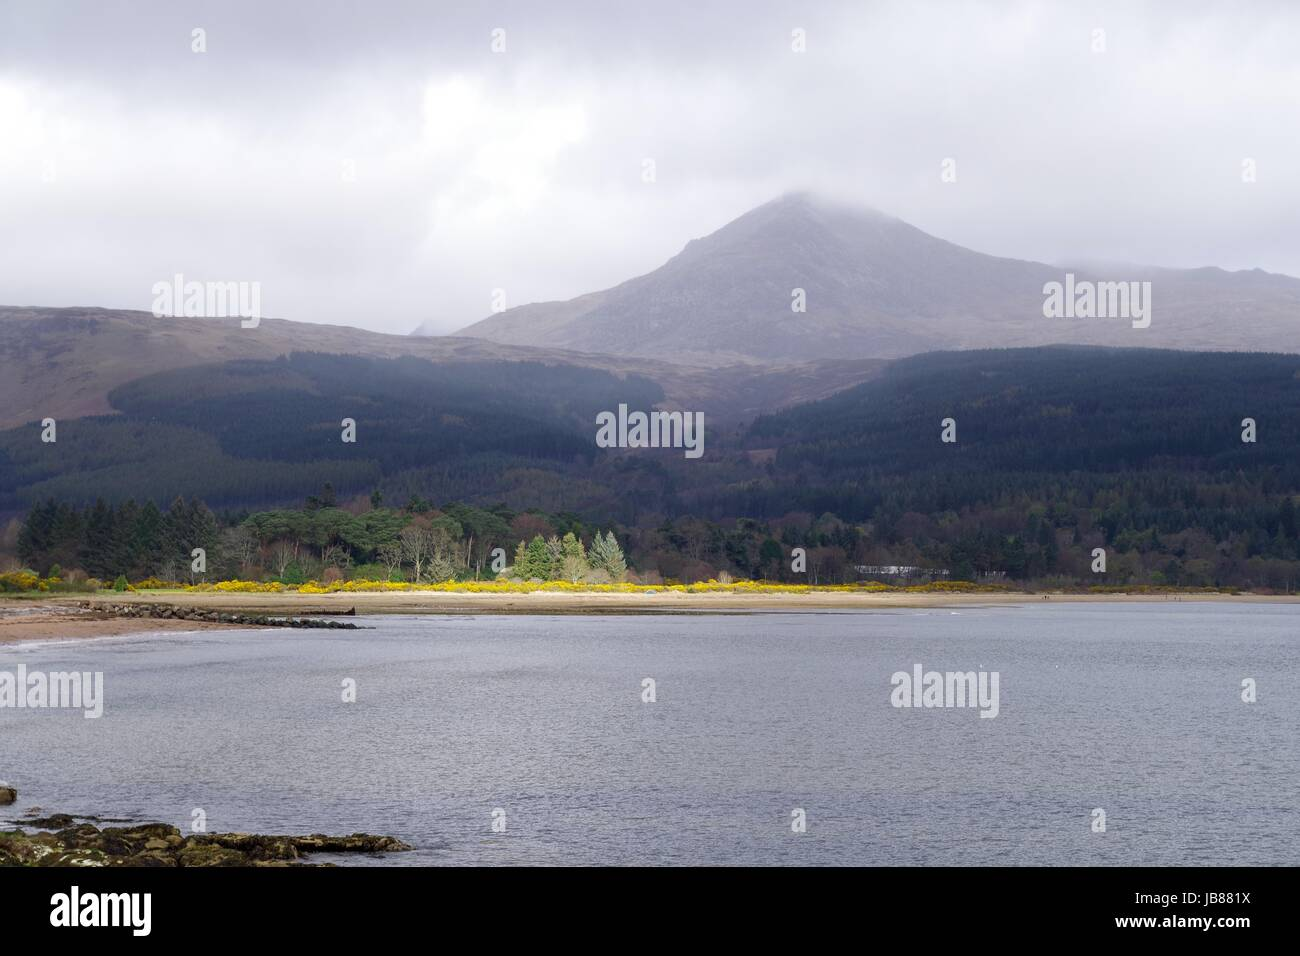 Cloud Capped Goat Fell Mountain Peak, Behind the Sunlit Foreshore of Brodrick Bay. Isle of Arran, Scotland. April, - Stock Image